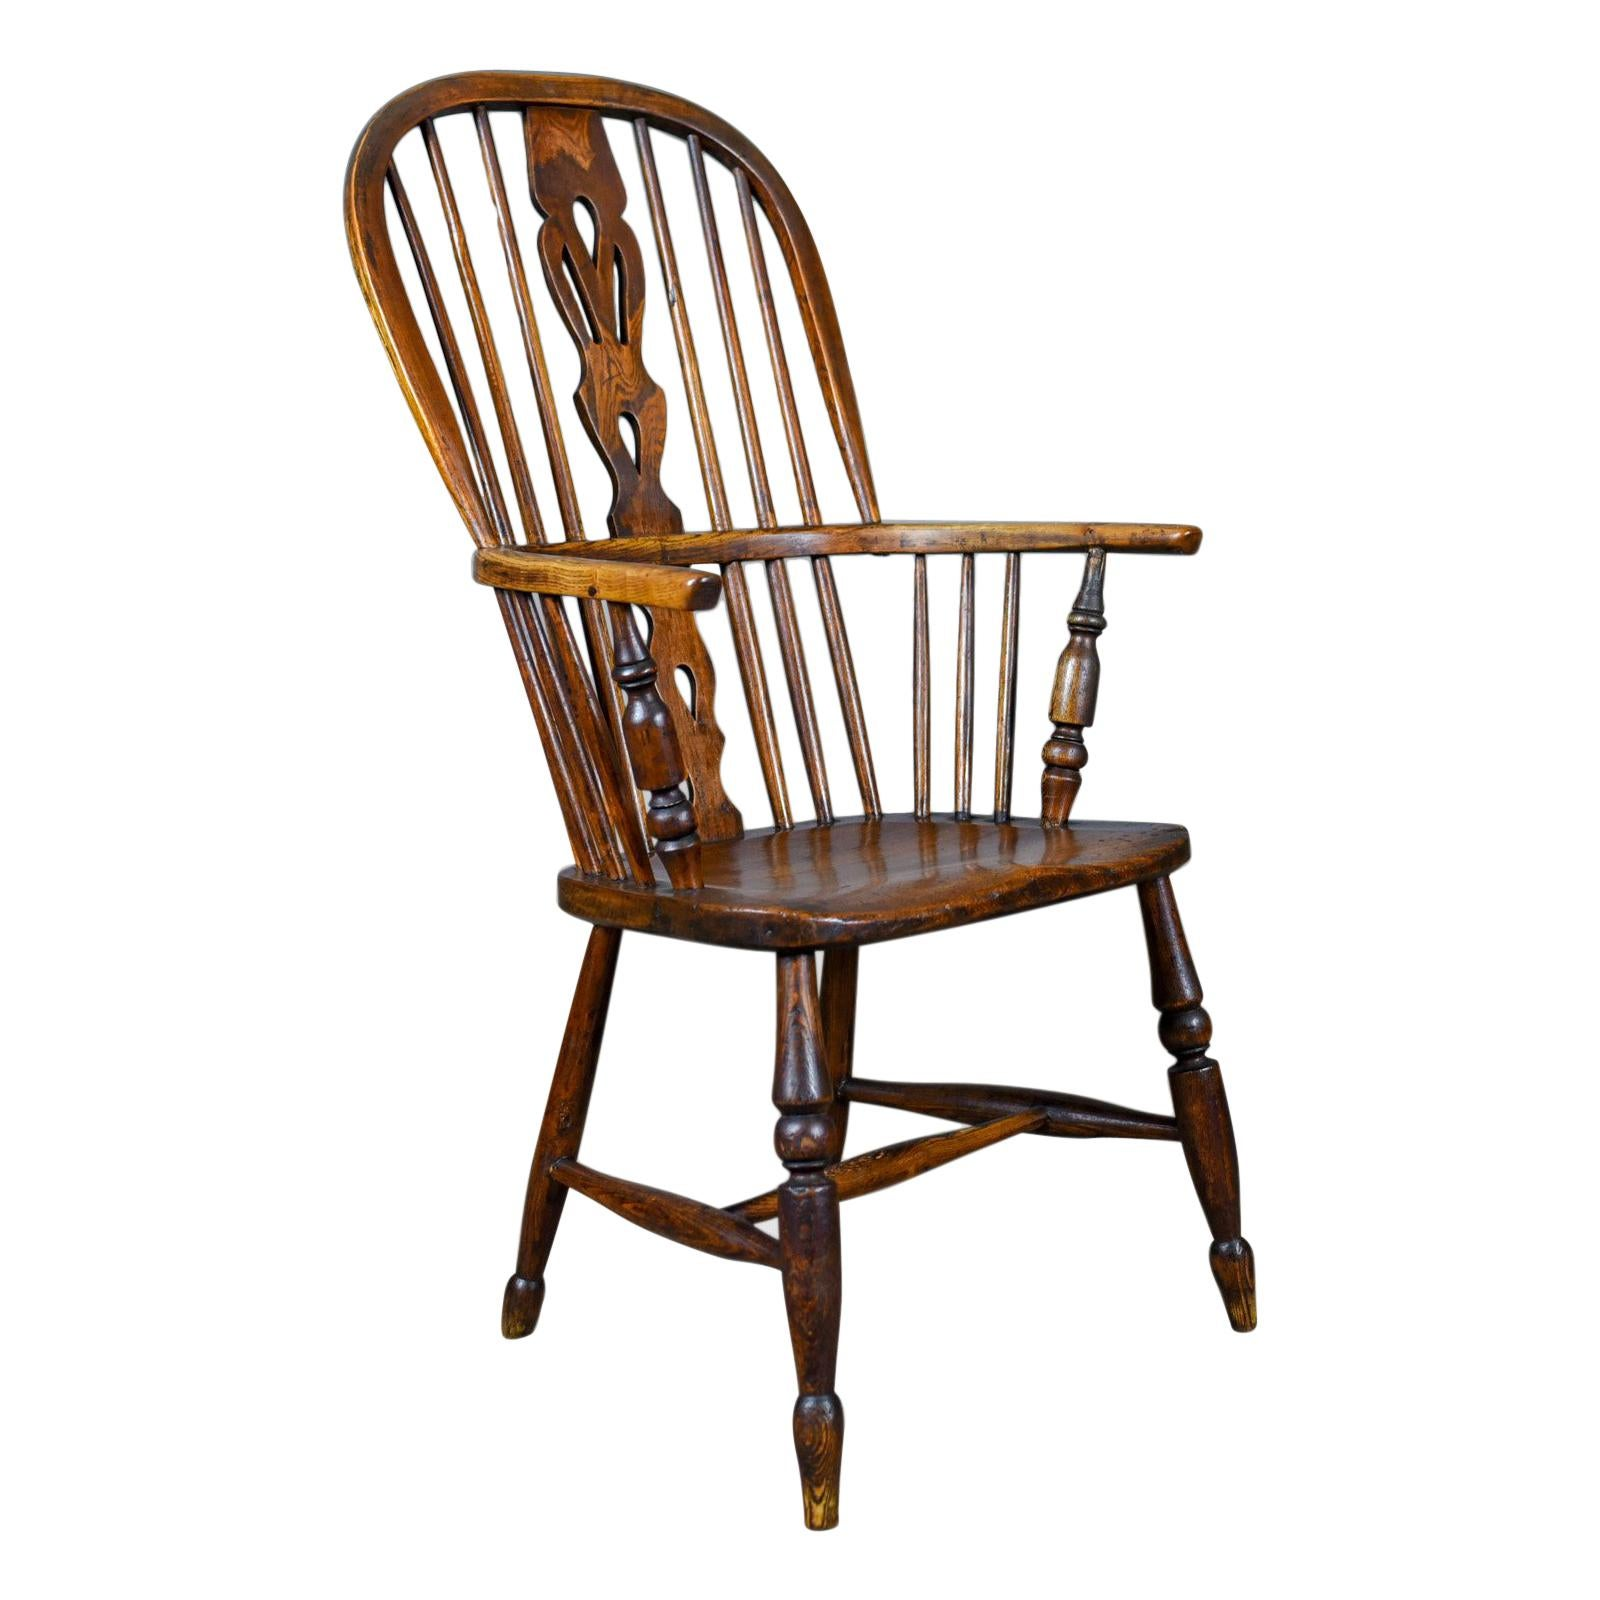 antique windsor chair desk vanity armchair english victorian stick back elbow circa 1860 for sale at 1stdibs